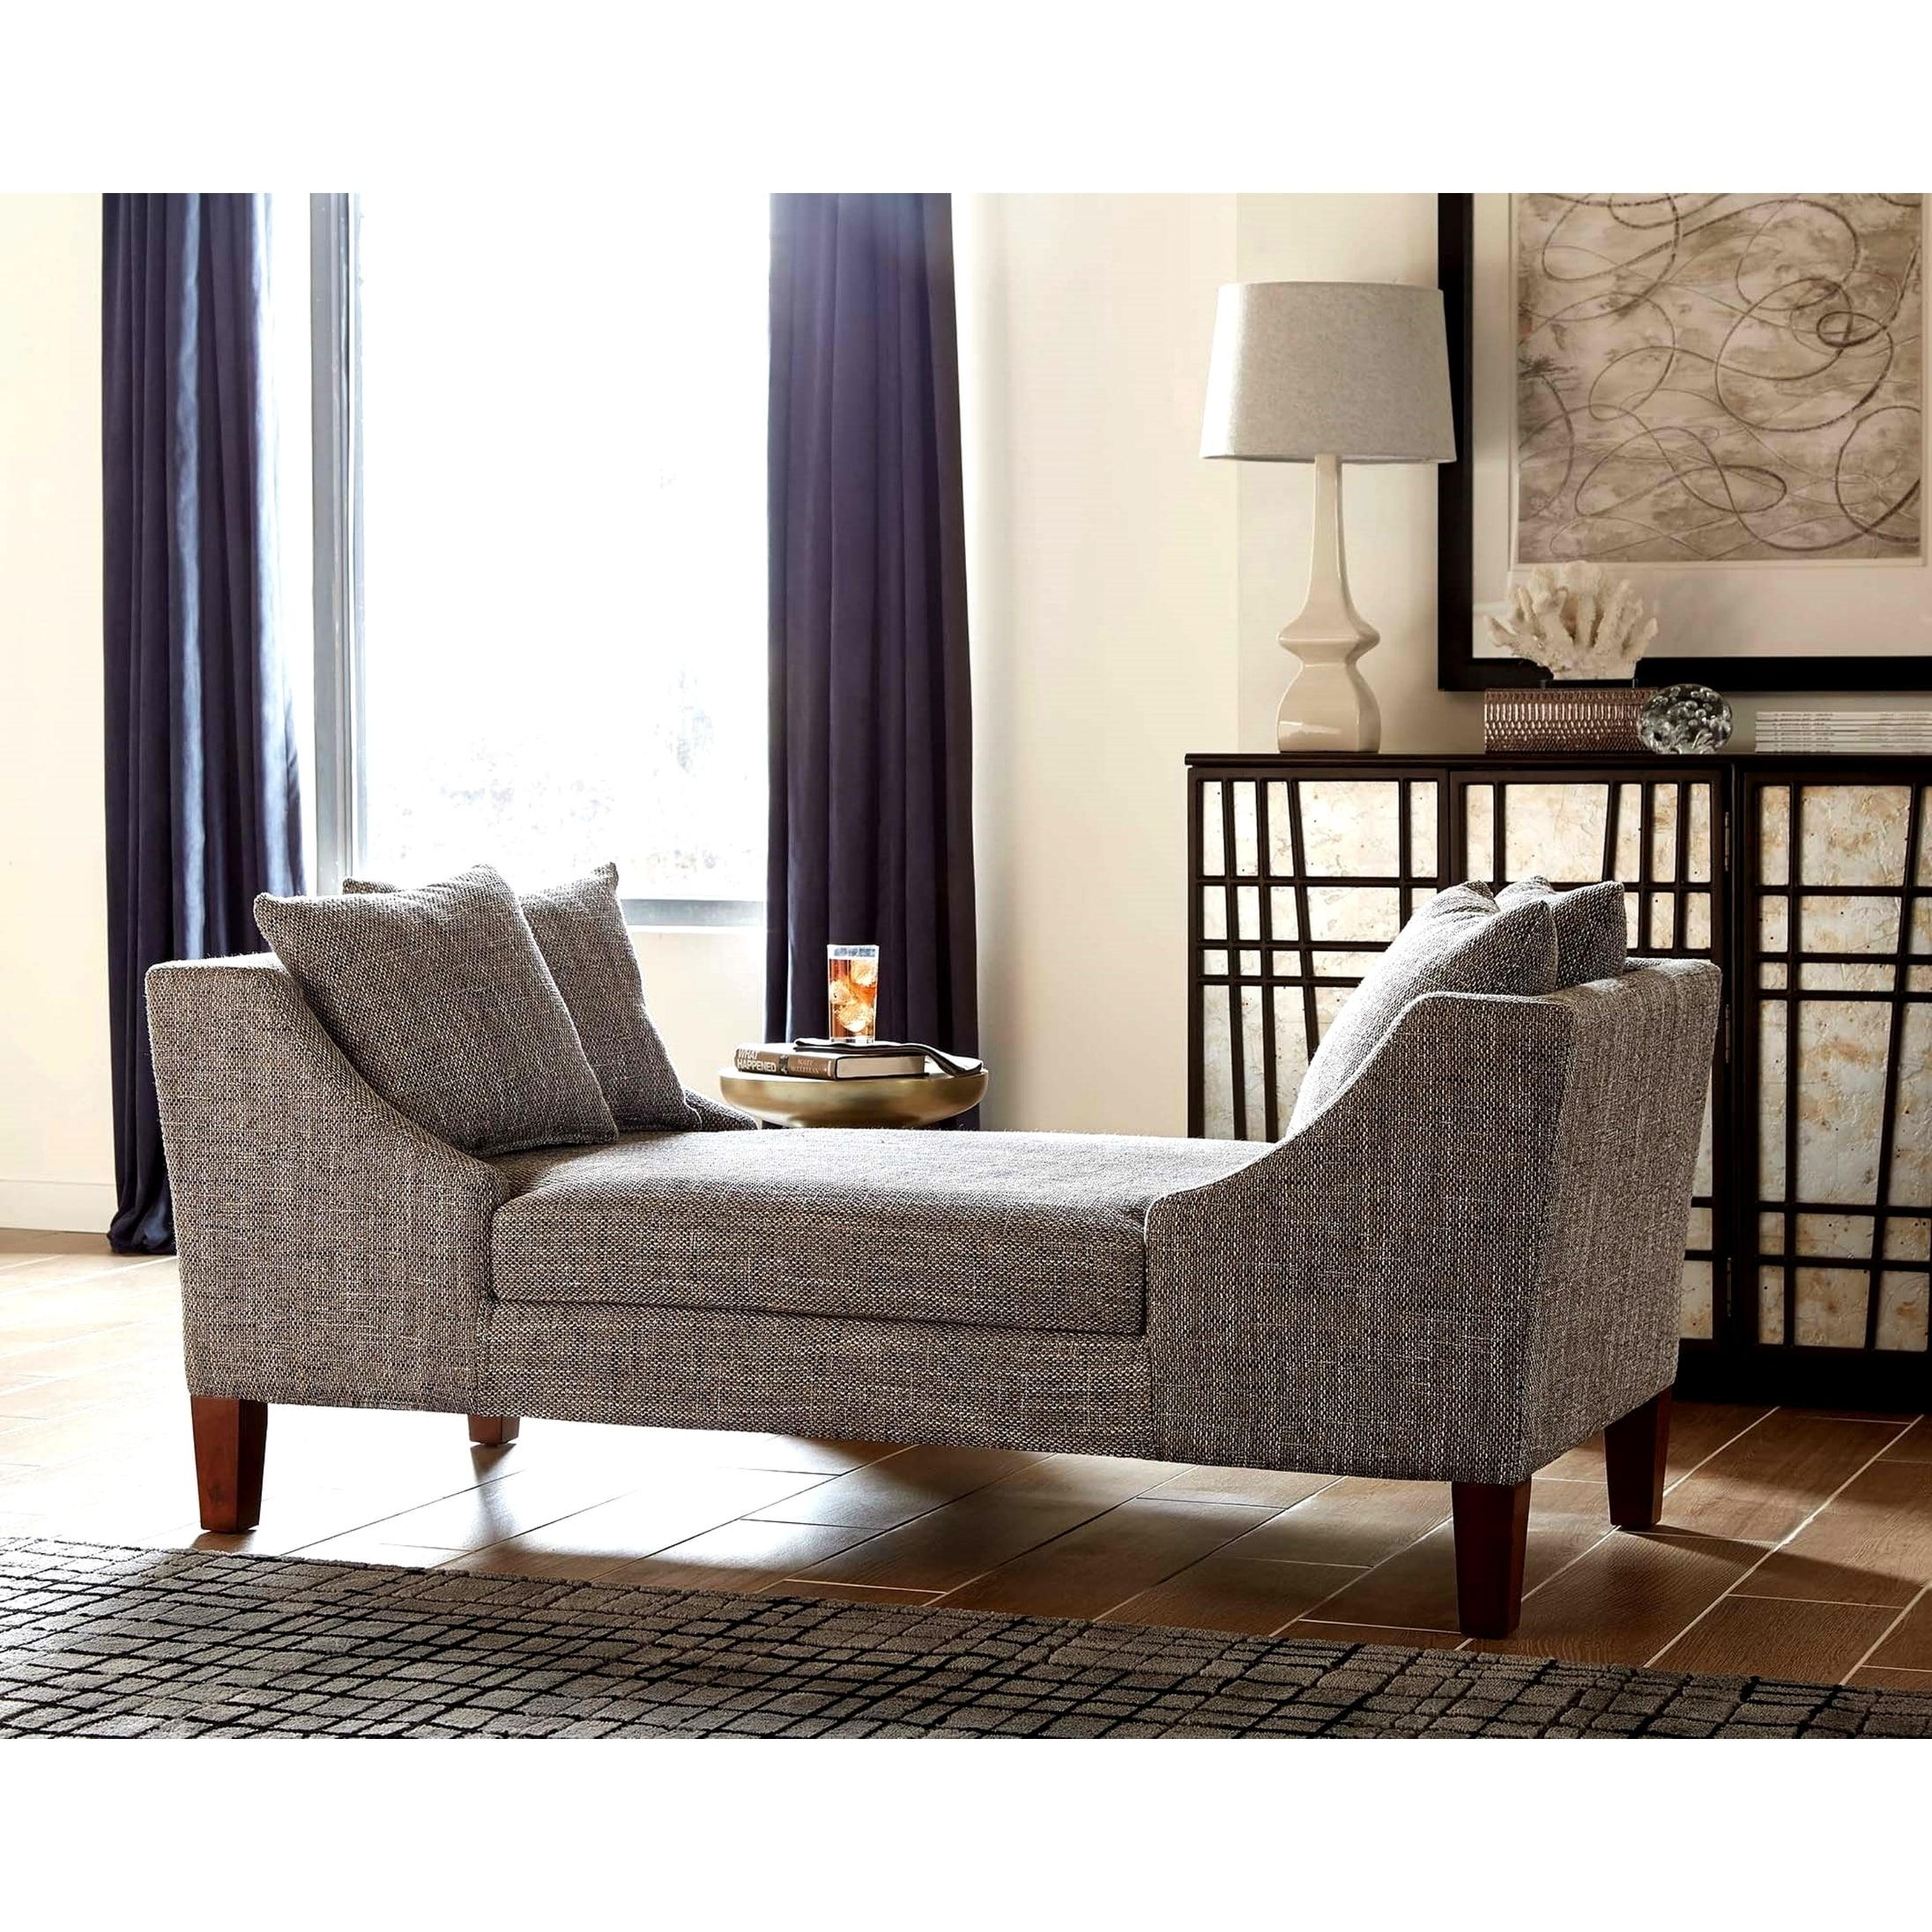 Modern Design Grey Fabric Wood Double Chaise Sofa Bench On Sale Overstock 26951756